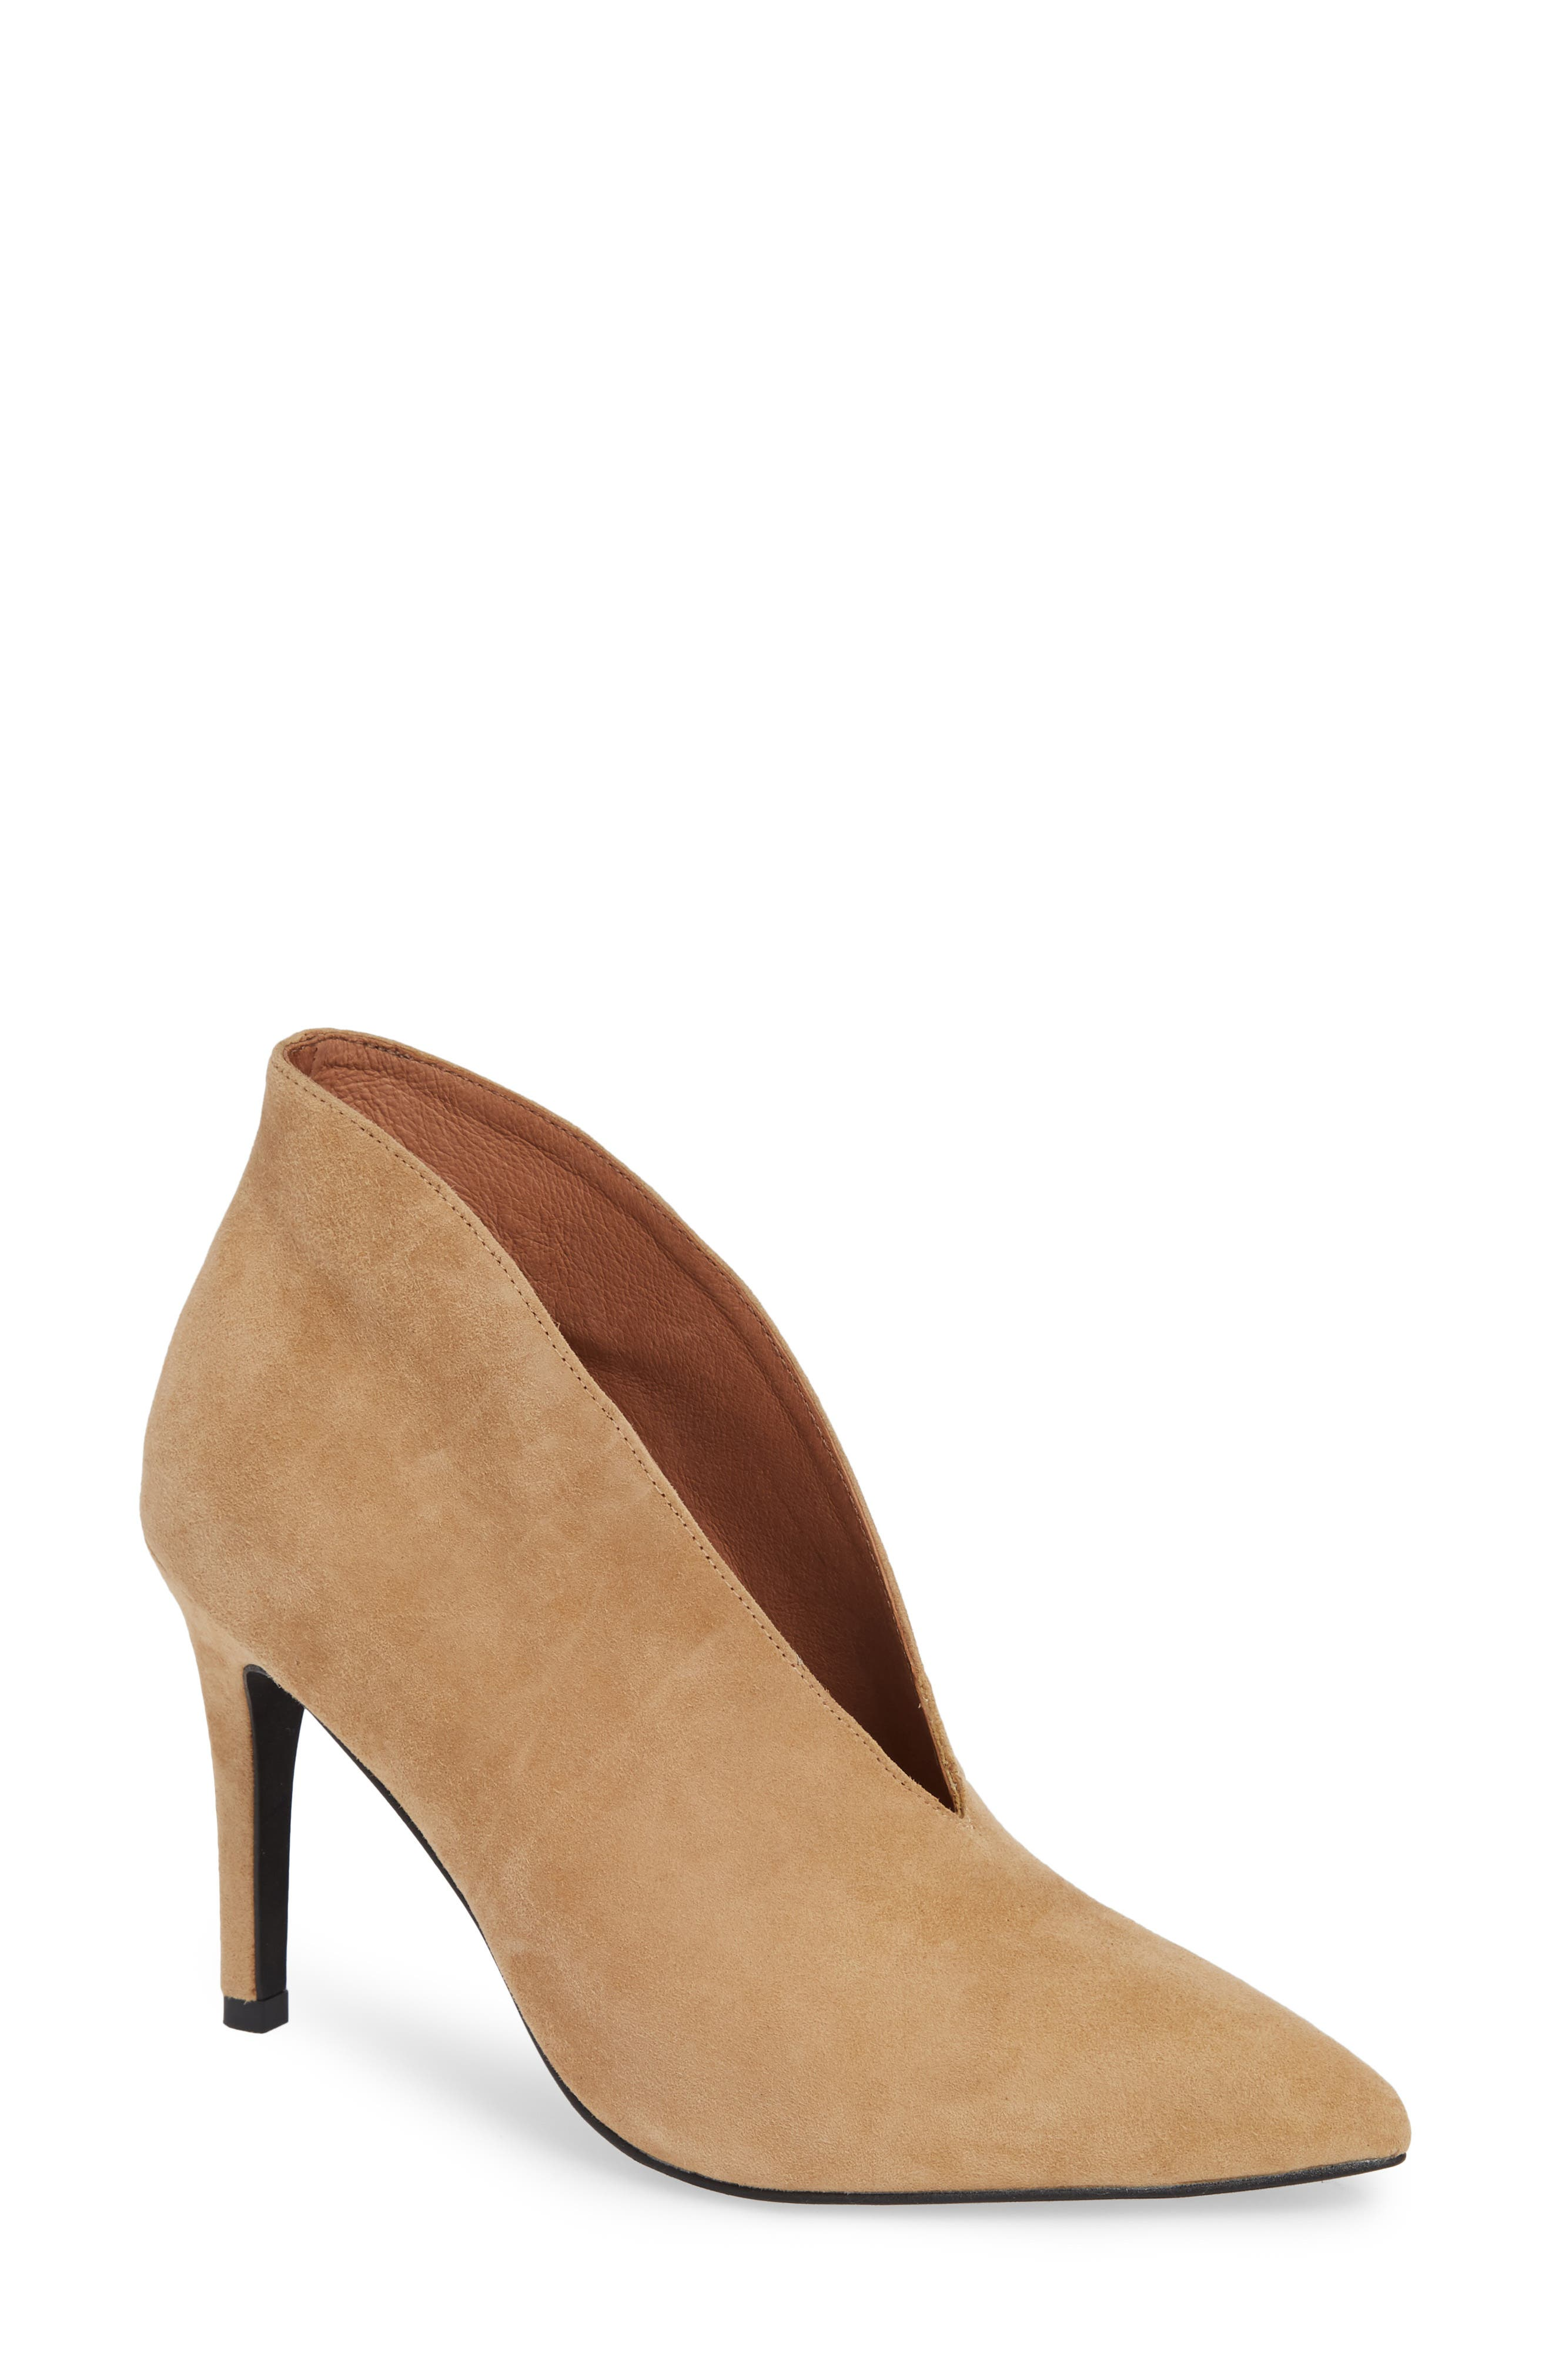 Electron Bootie,                             Main thumbnail 1, color,                             NUDE SUEDE